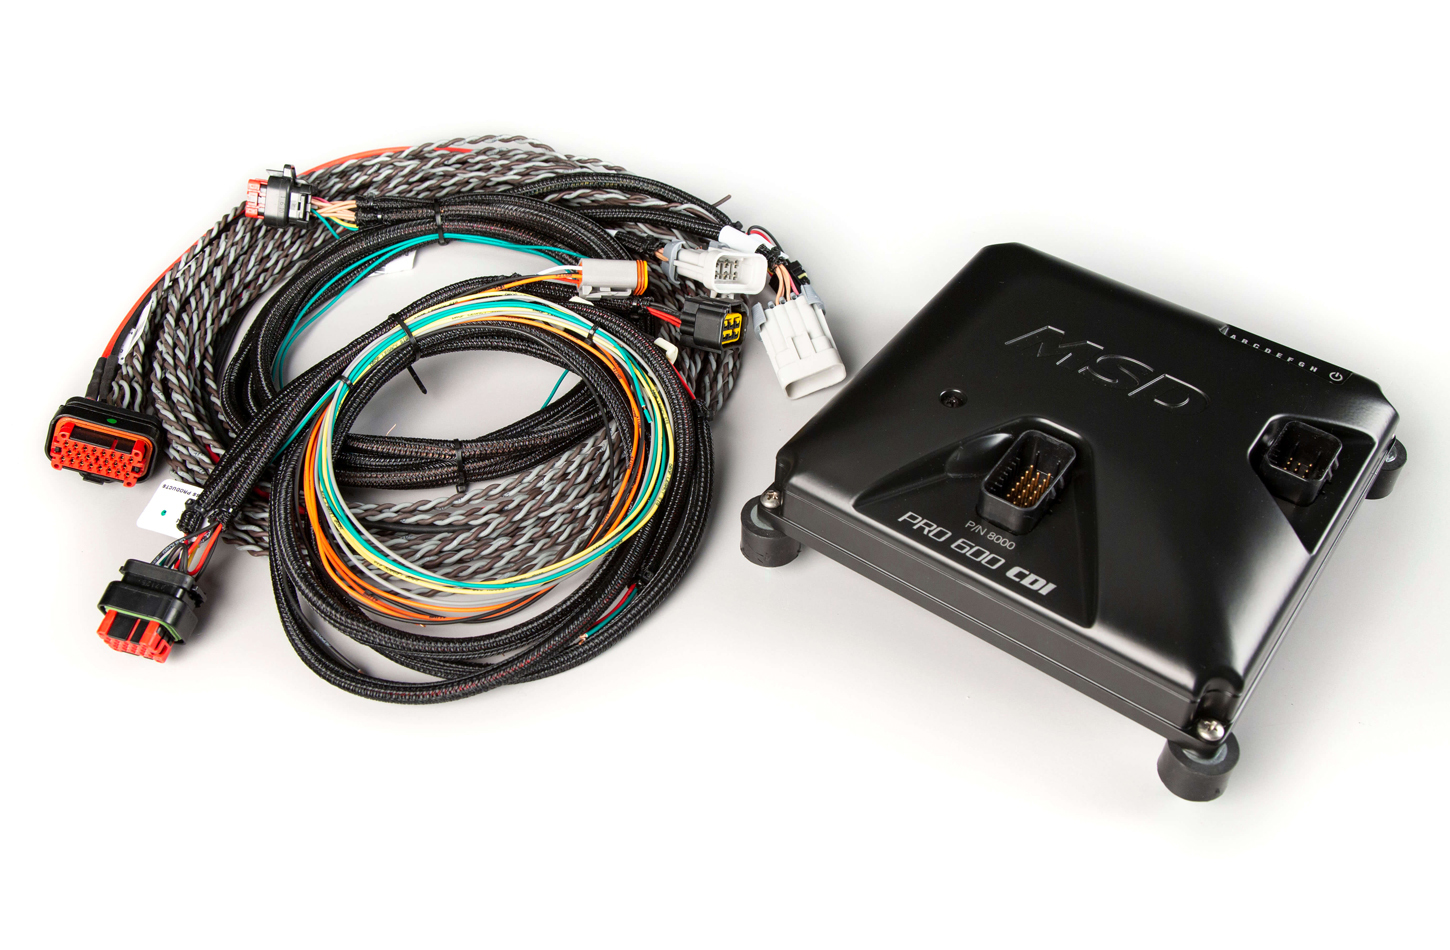 Msd Ignition Pro 600 CDI Ignition System